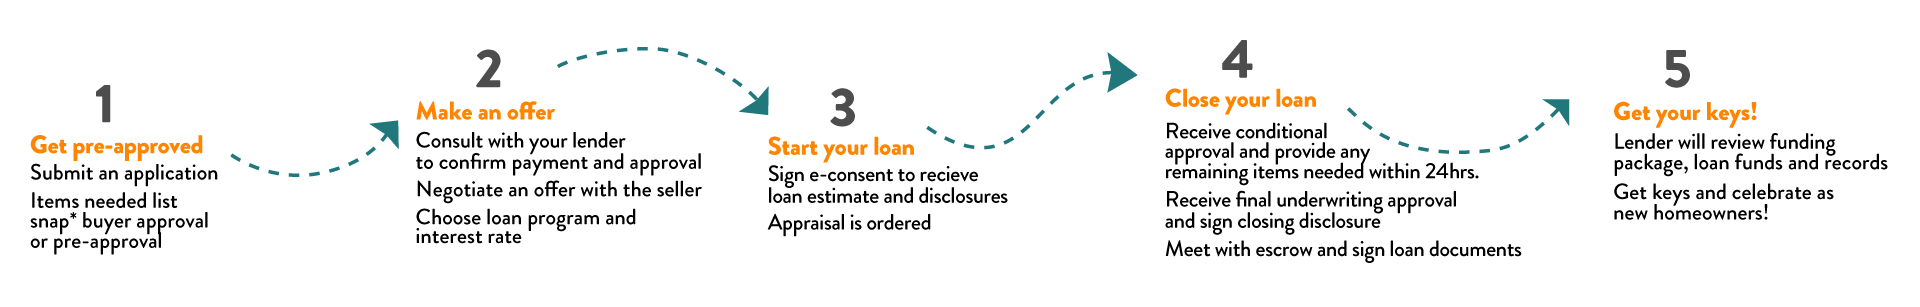 Steps of Loan Process